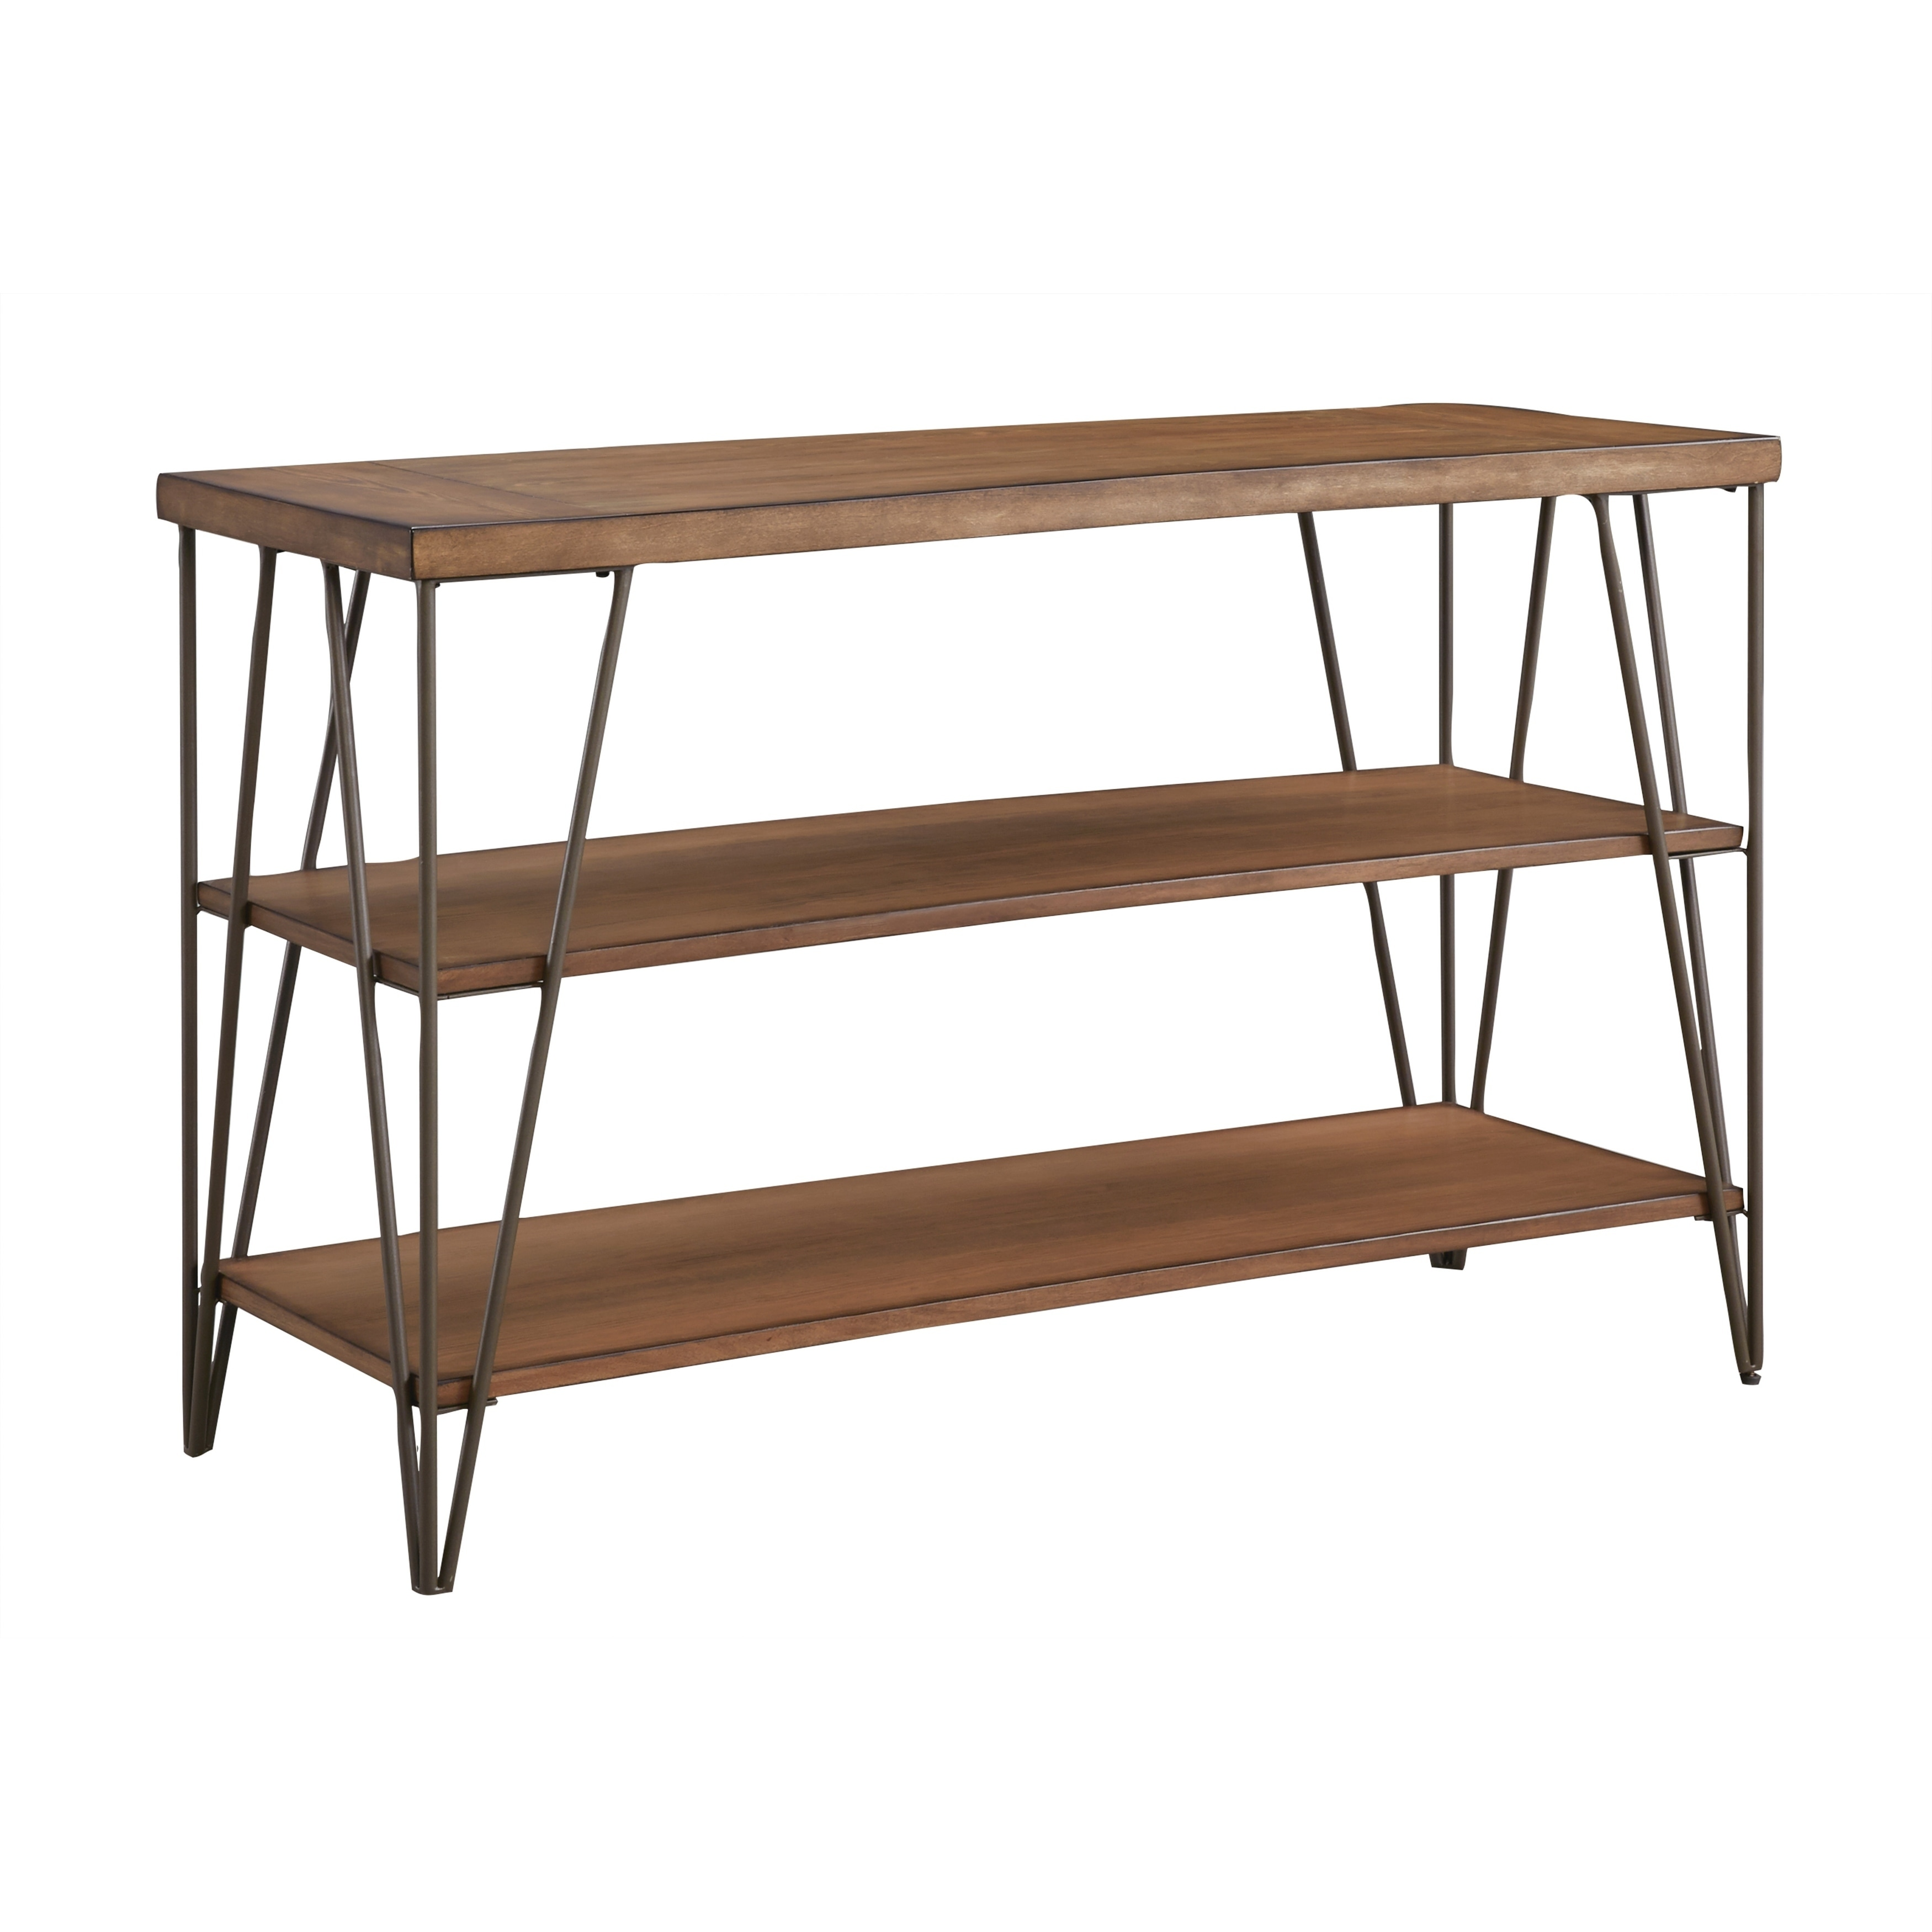 Standard Furniture Bedford Console Table, Rustic Pine